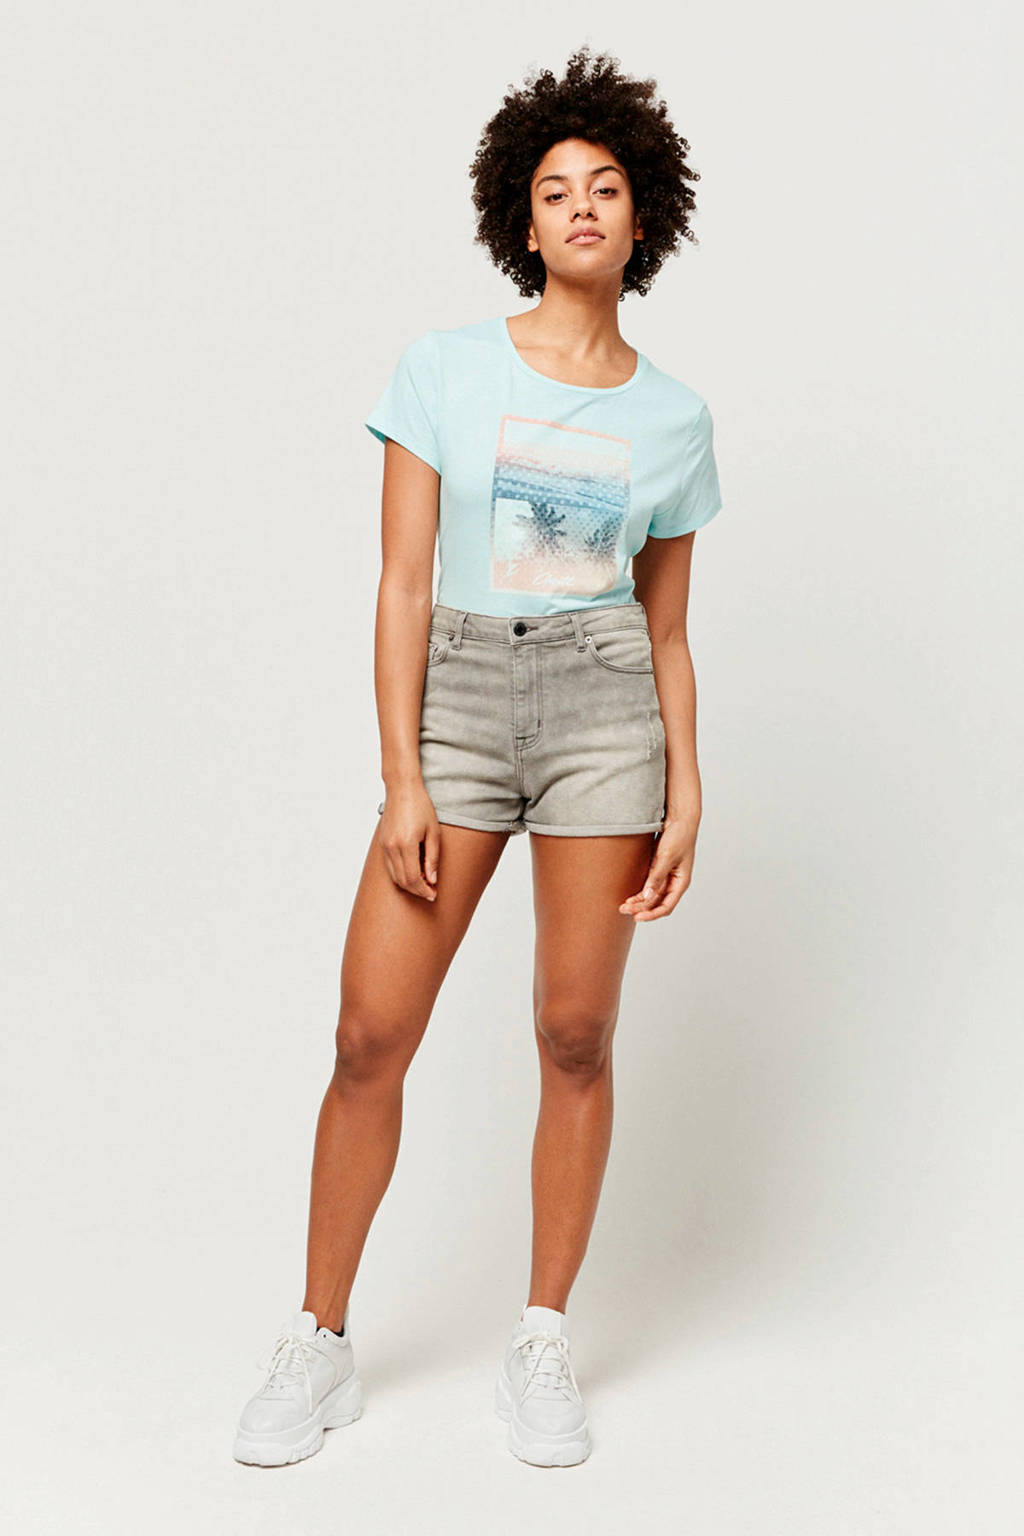 O'Neill T-shirt met printopdruk turquoise, Turquoise